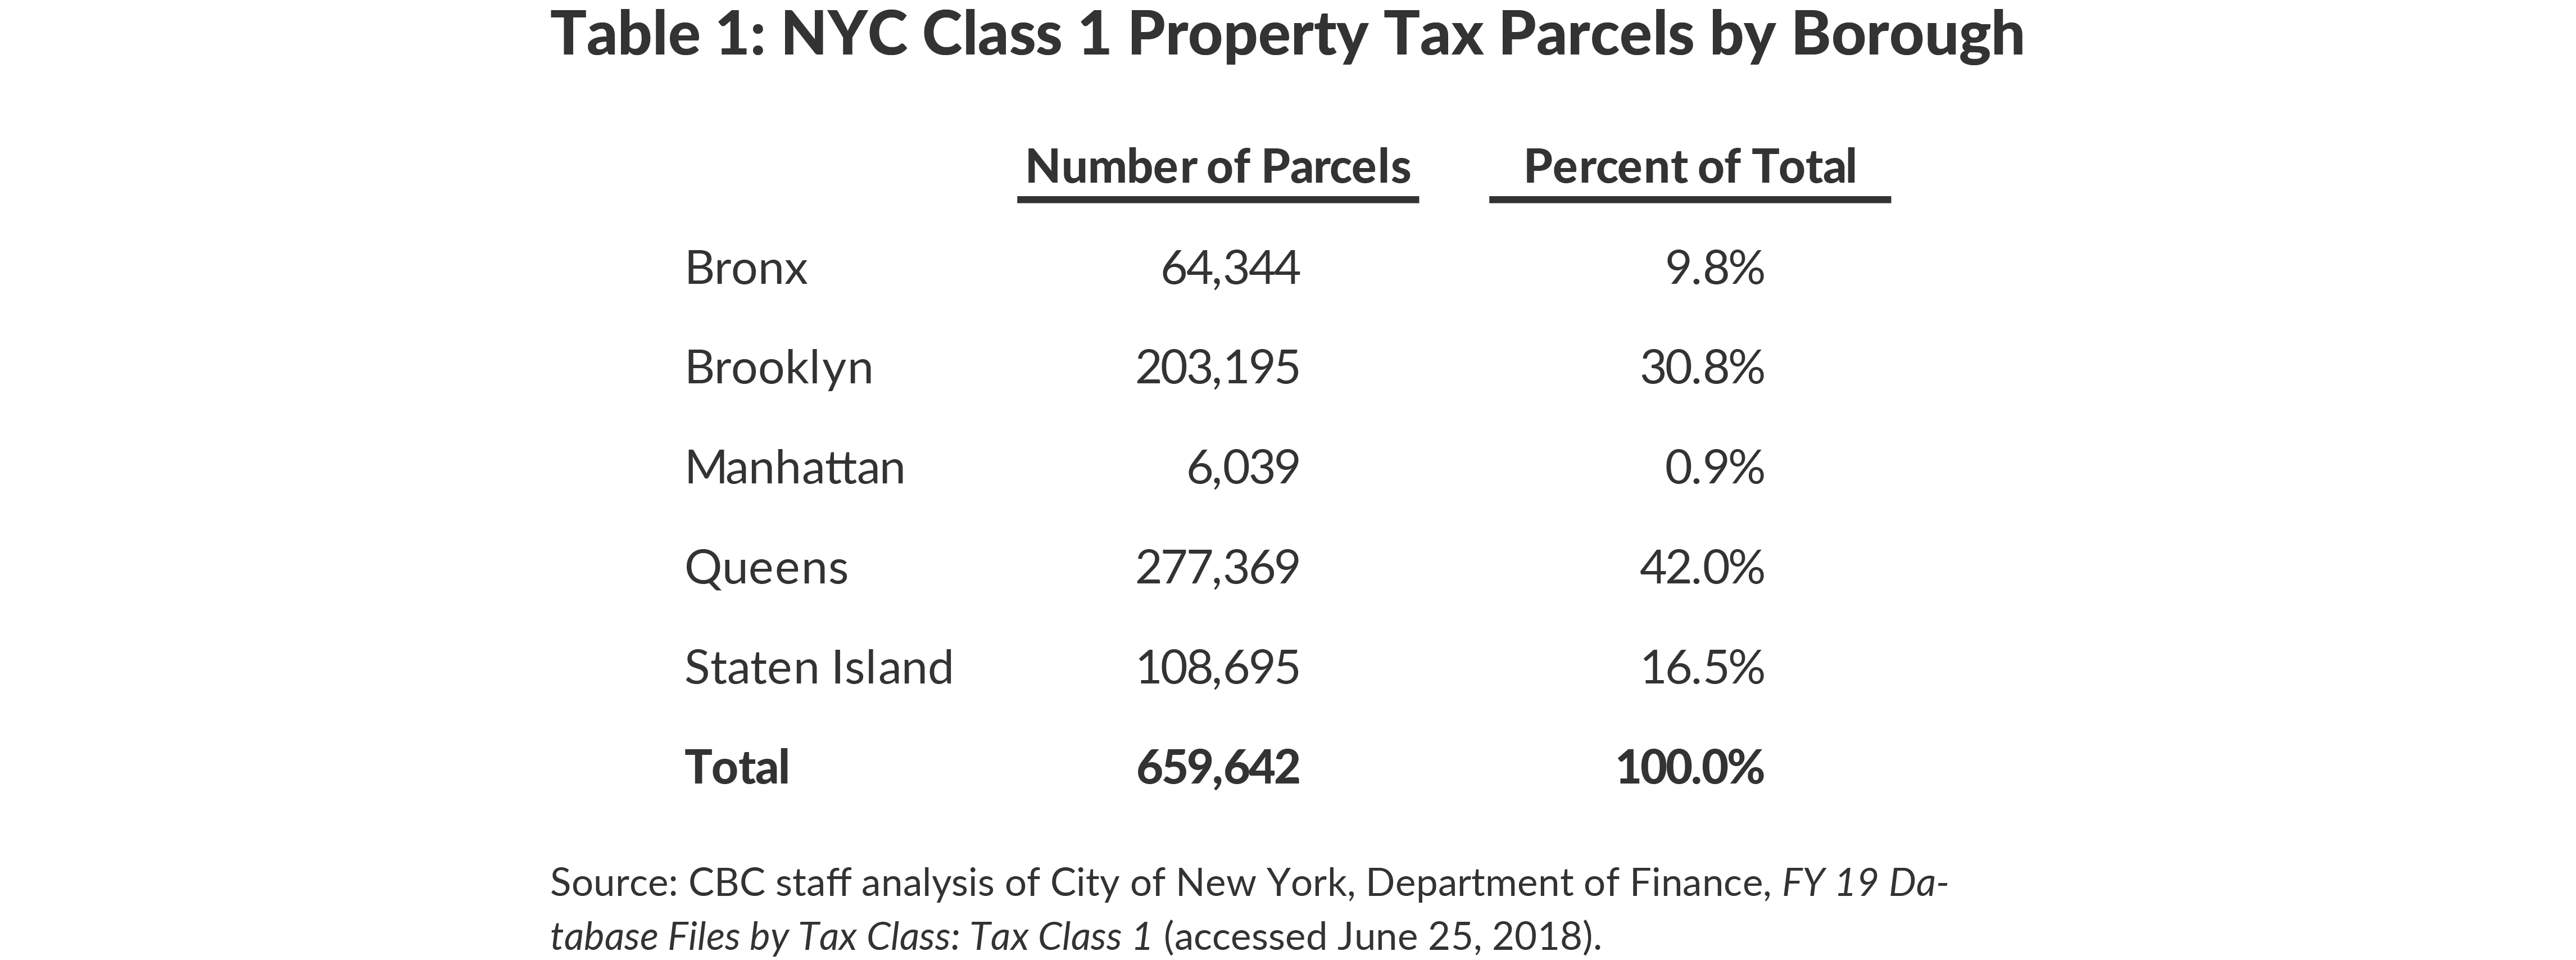 Table 1: NYC Class 1 Property Tax Parcels by Borough